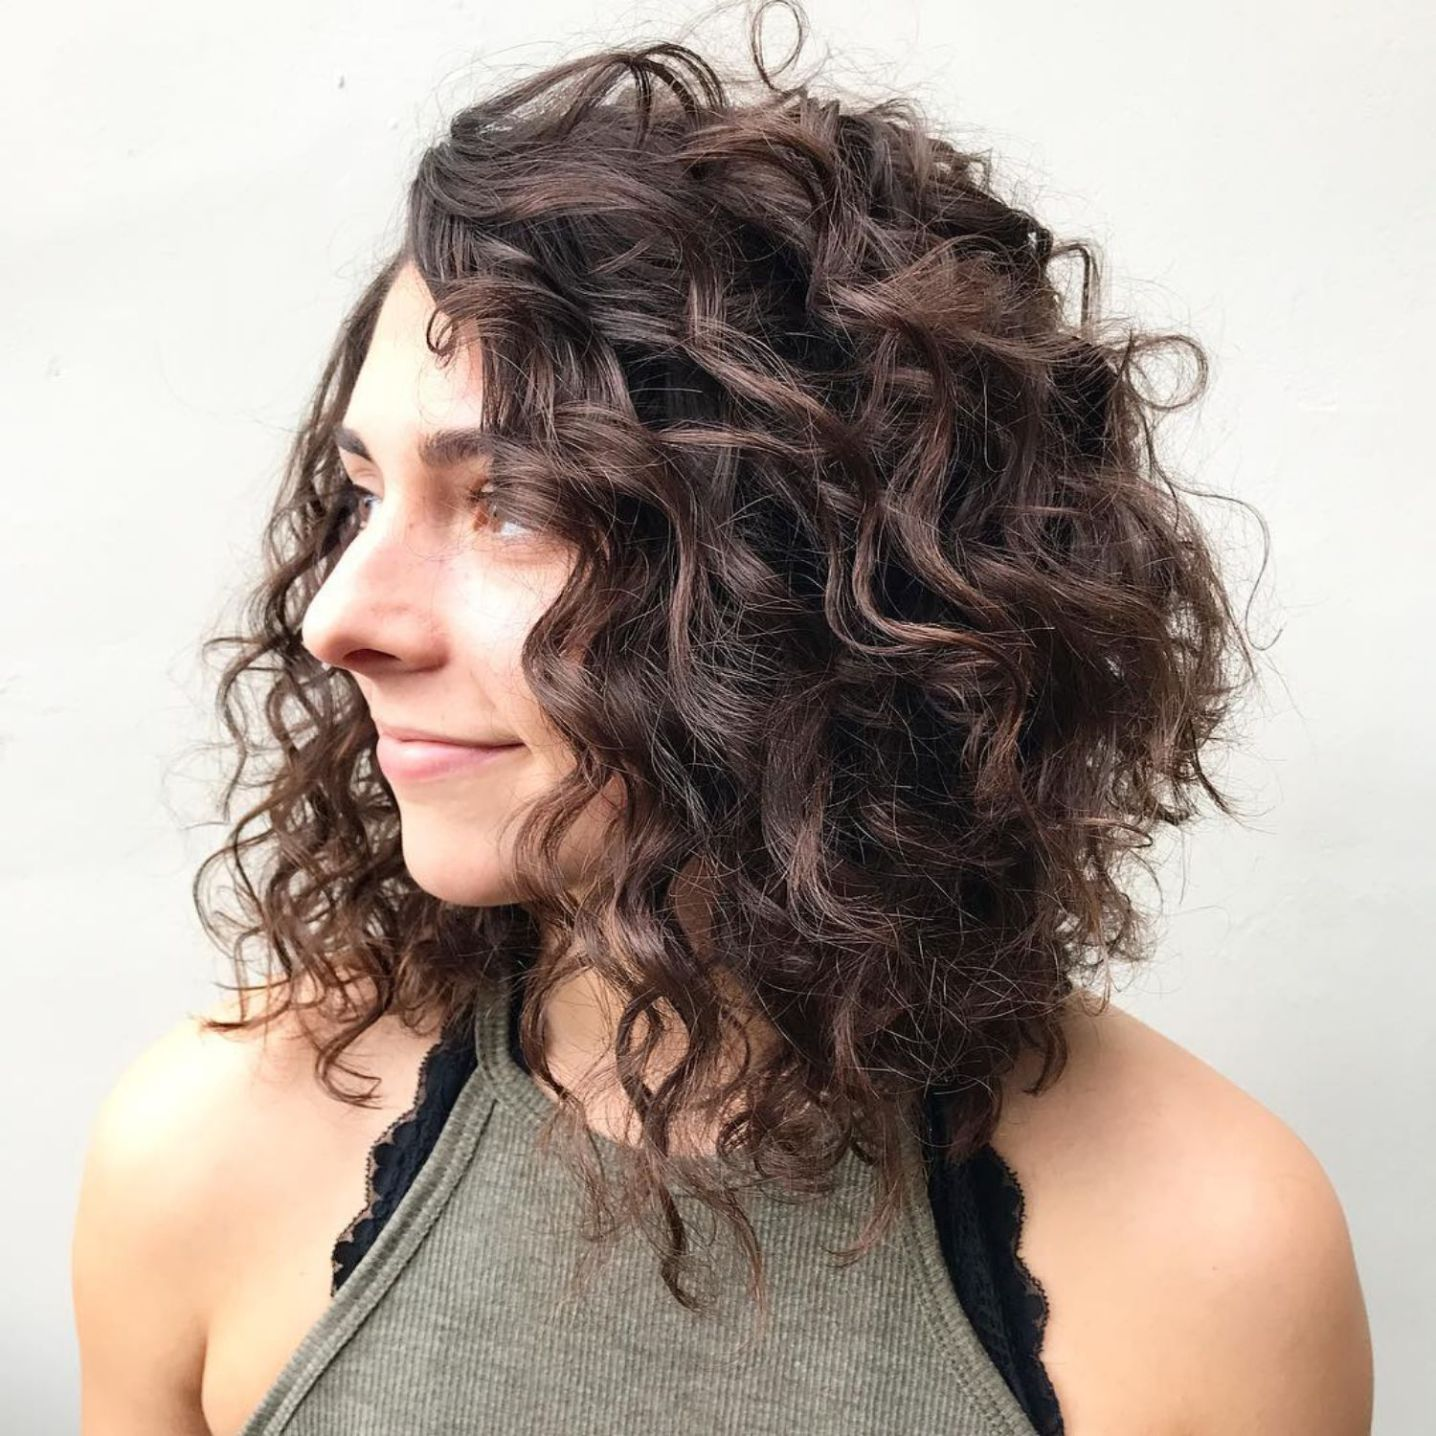 65 Different Versions Of Curly Bob Hairstyle Curly Hair Styles Naturally Curly Lob Curly Hair Styles